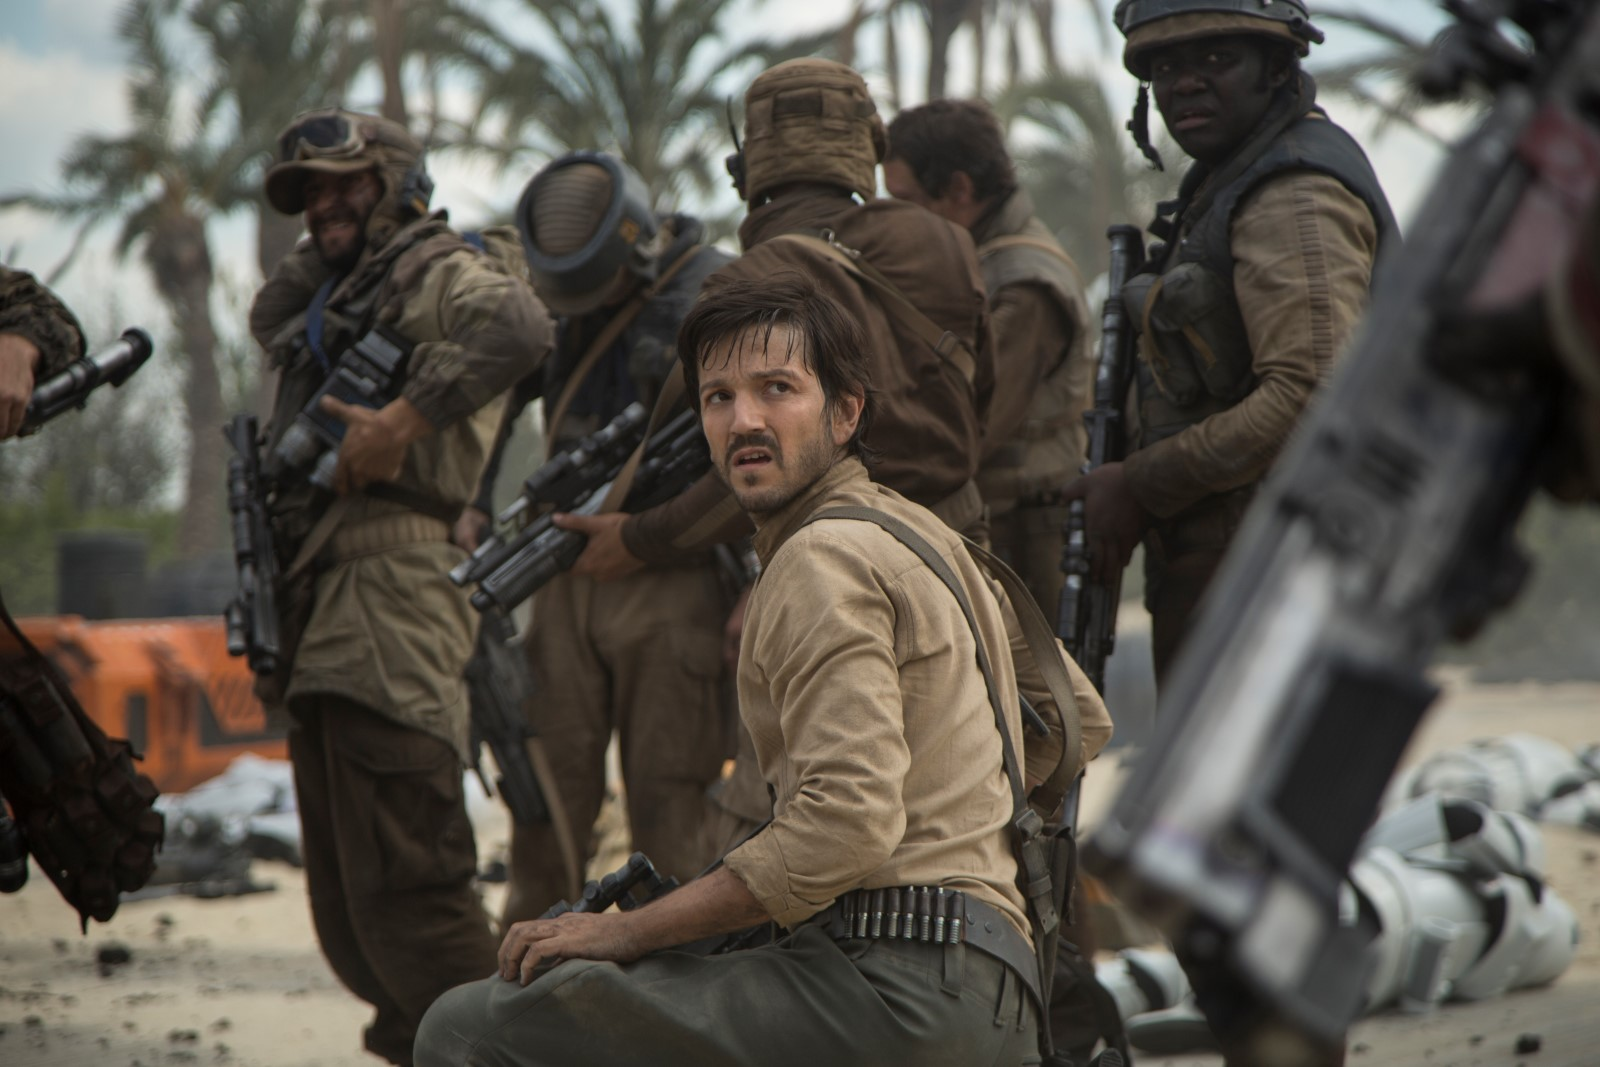 Diego Luna to Star in 'Star Wars: Rogue One' Prequel Series